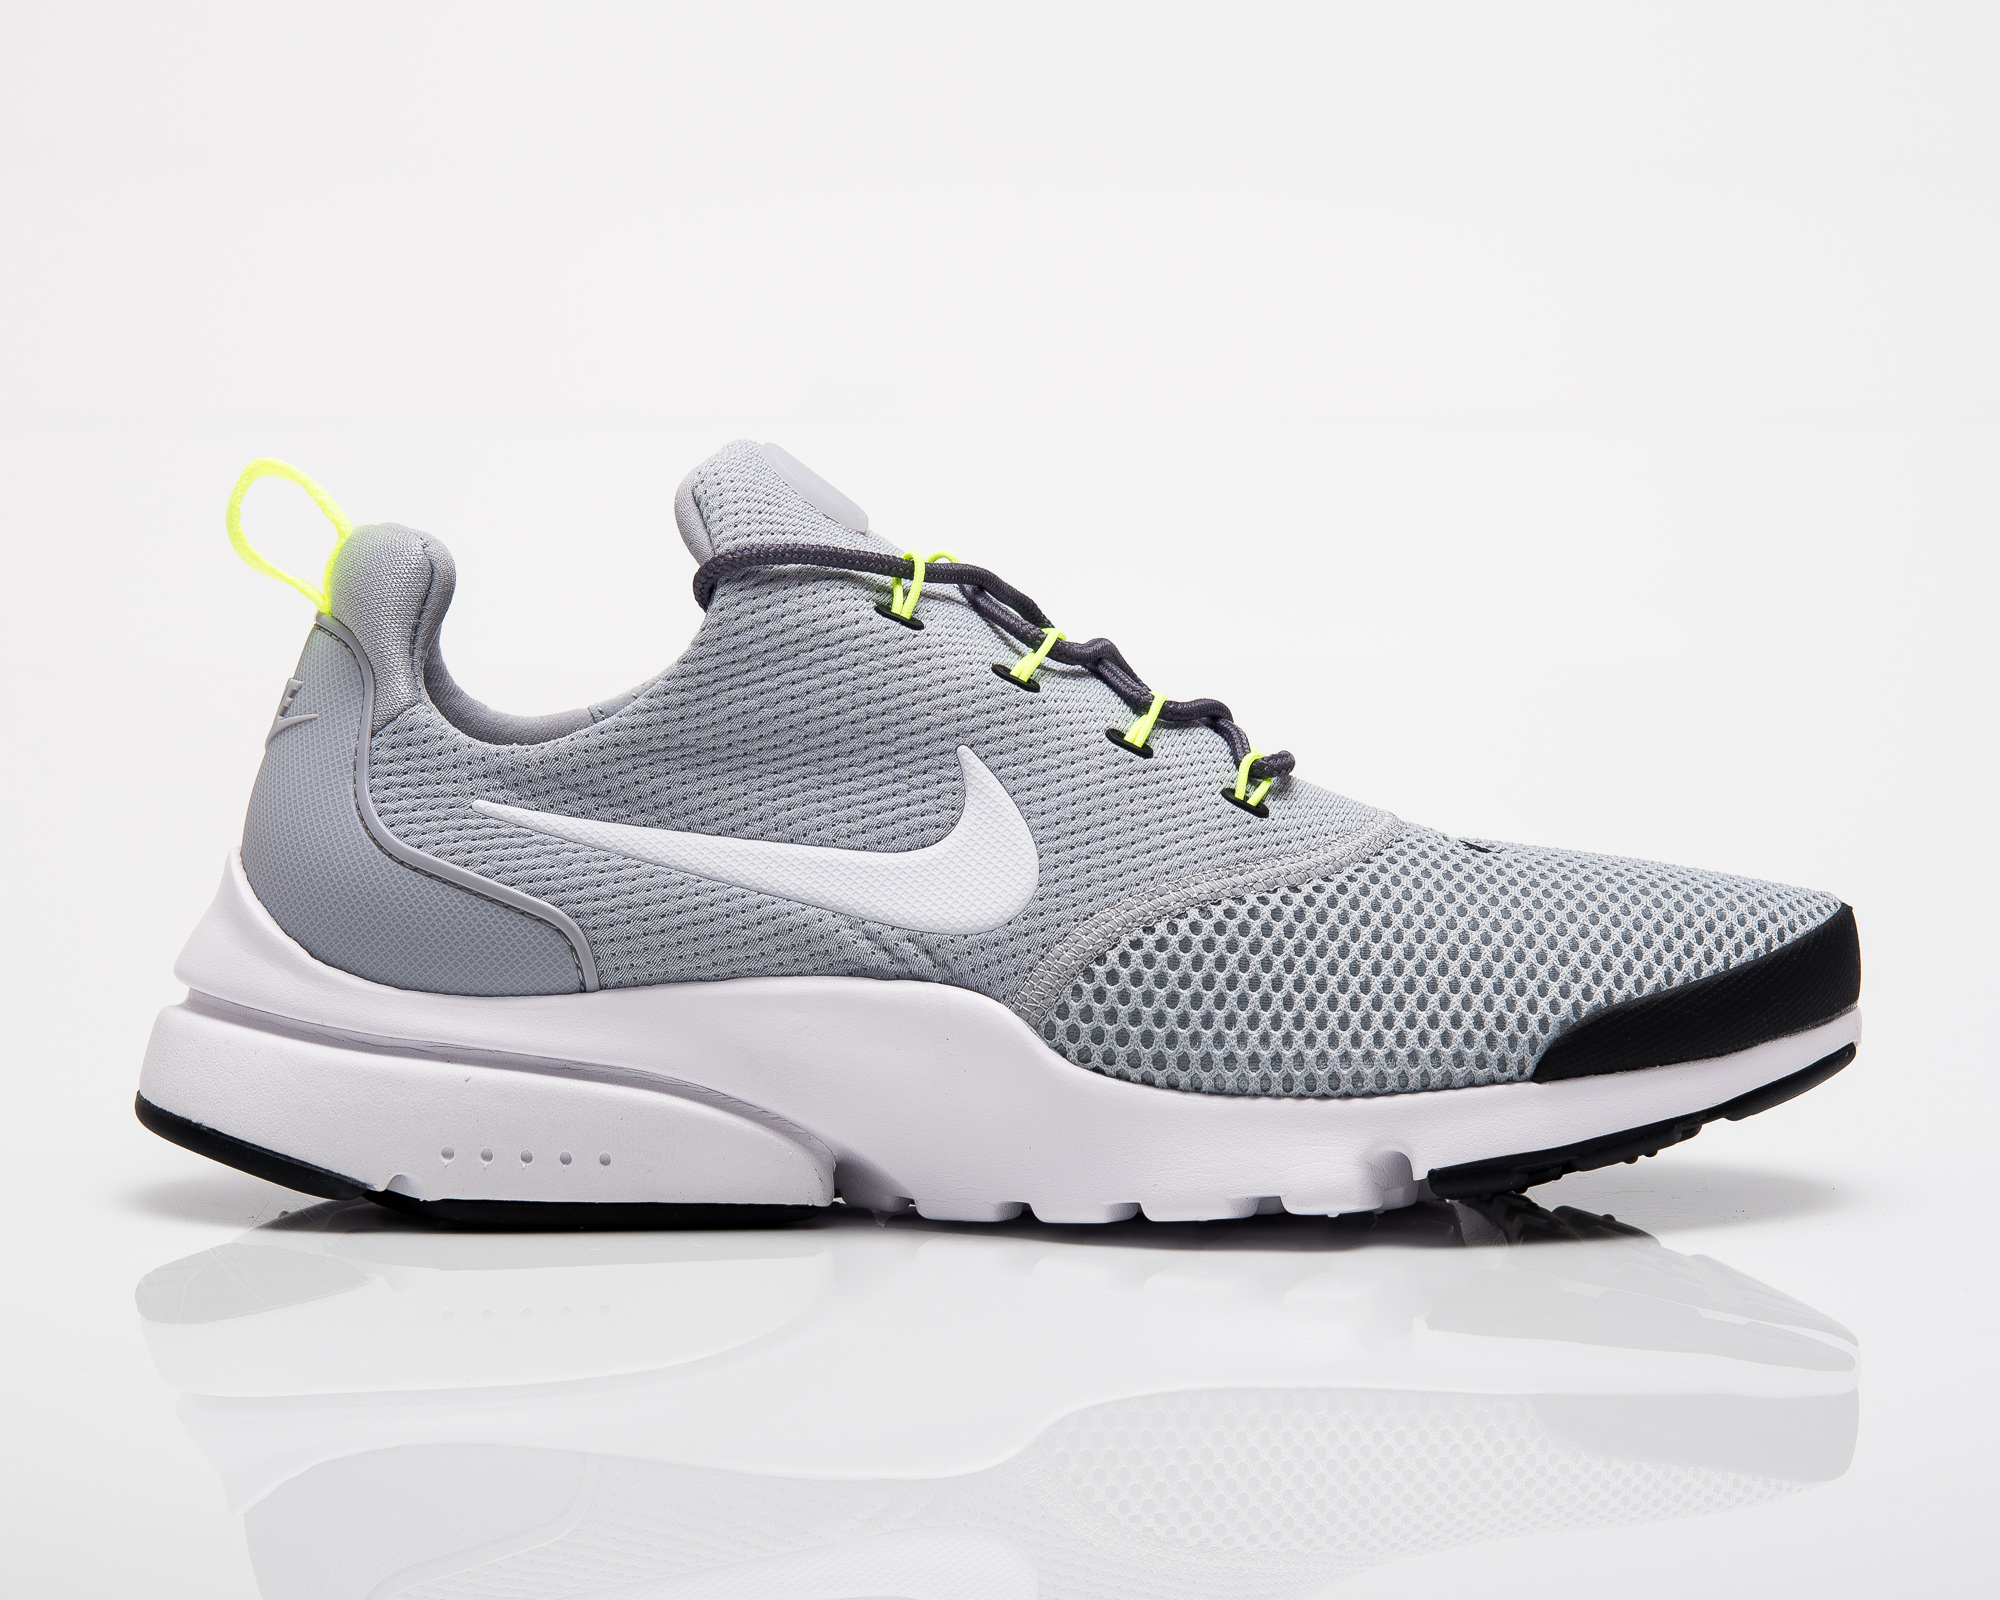 68754725159b9 Nike Presto Fly - Shoes Casual - Sporting goods | sil.lt